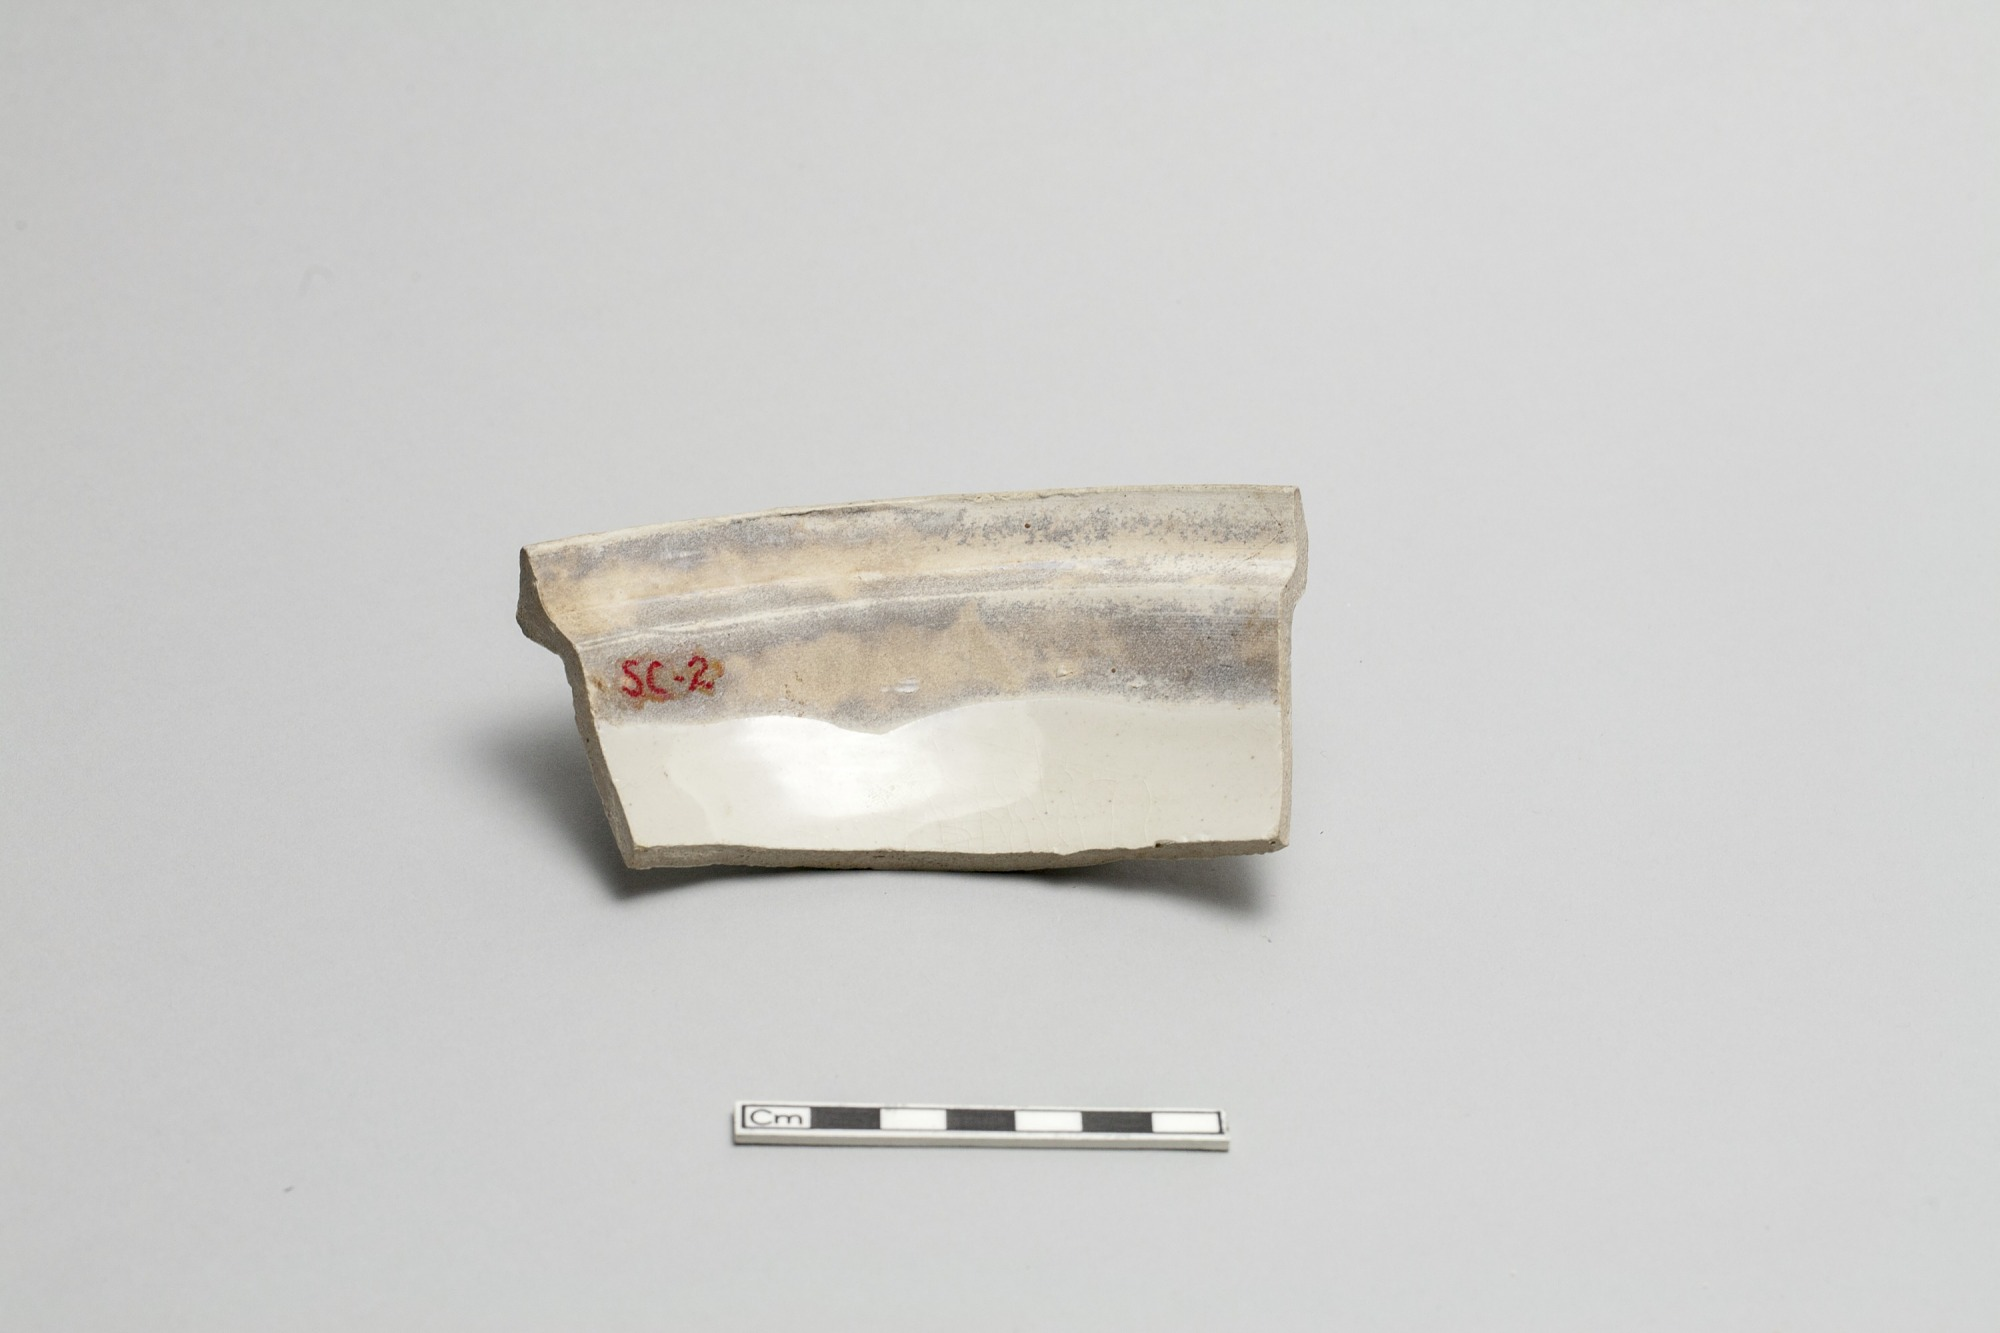 One of two fragments of a cover for a round dish or bowl (goes with FSC-P-3)